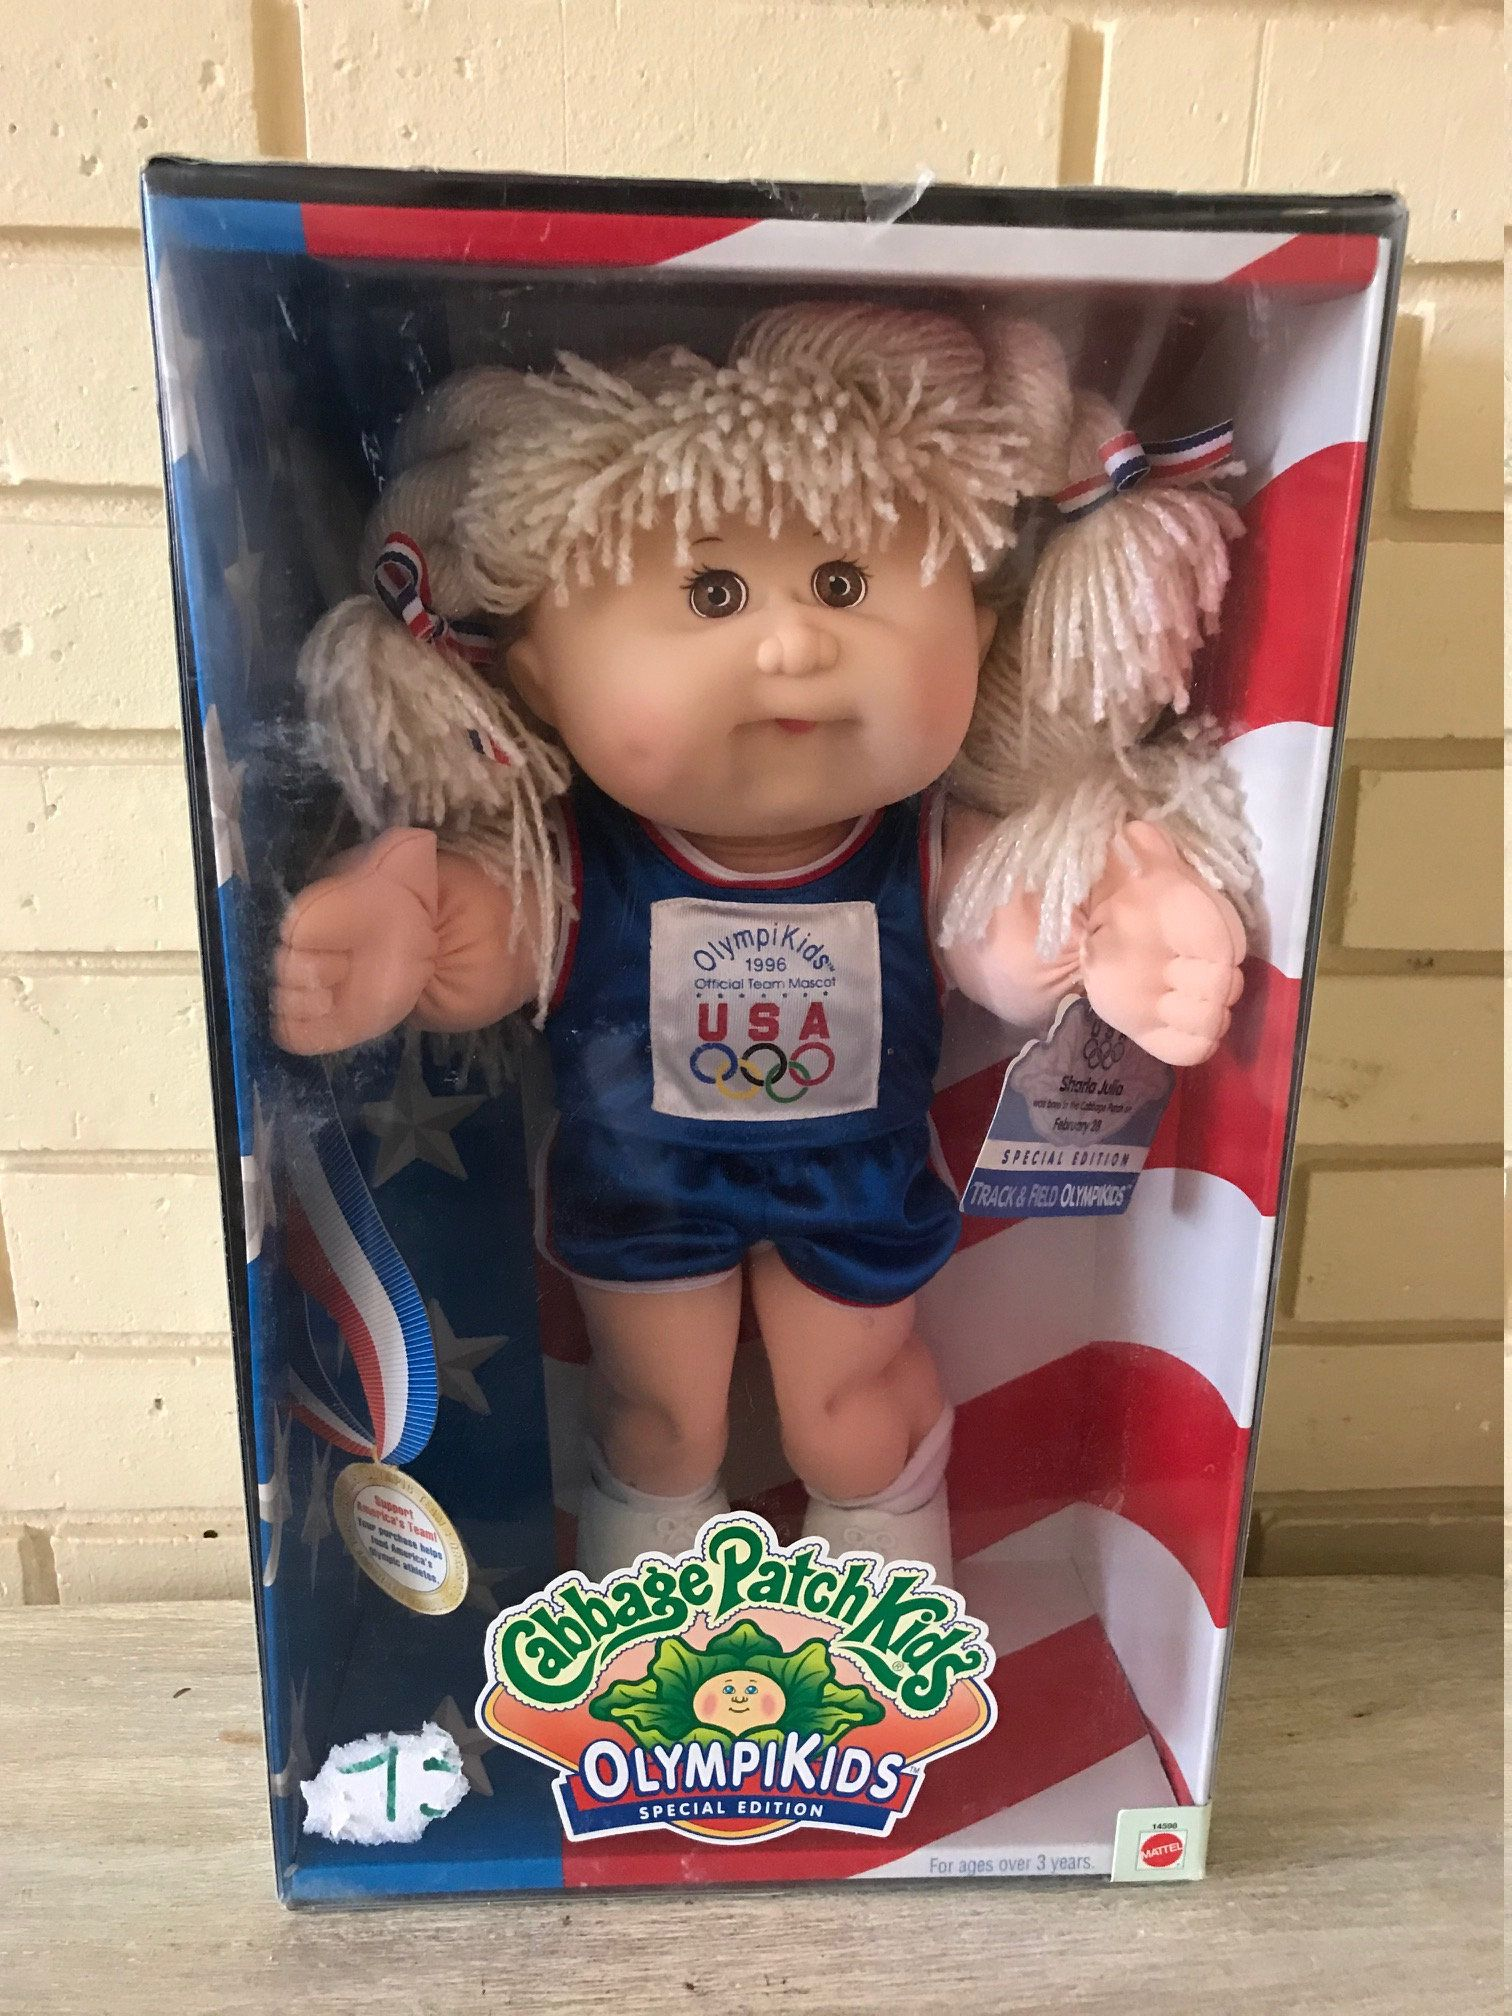 Vintage Cabbage Patch Kids Olympikids 1996 Special Edition Etsy Cabbage Patch Kids Patch Kids Kids